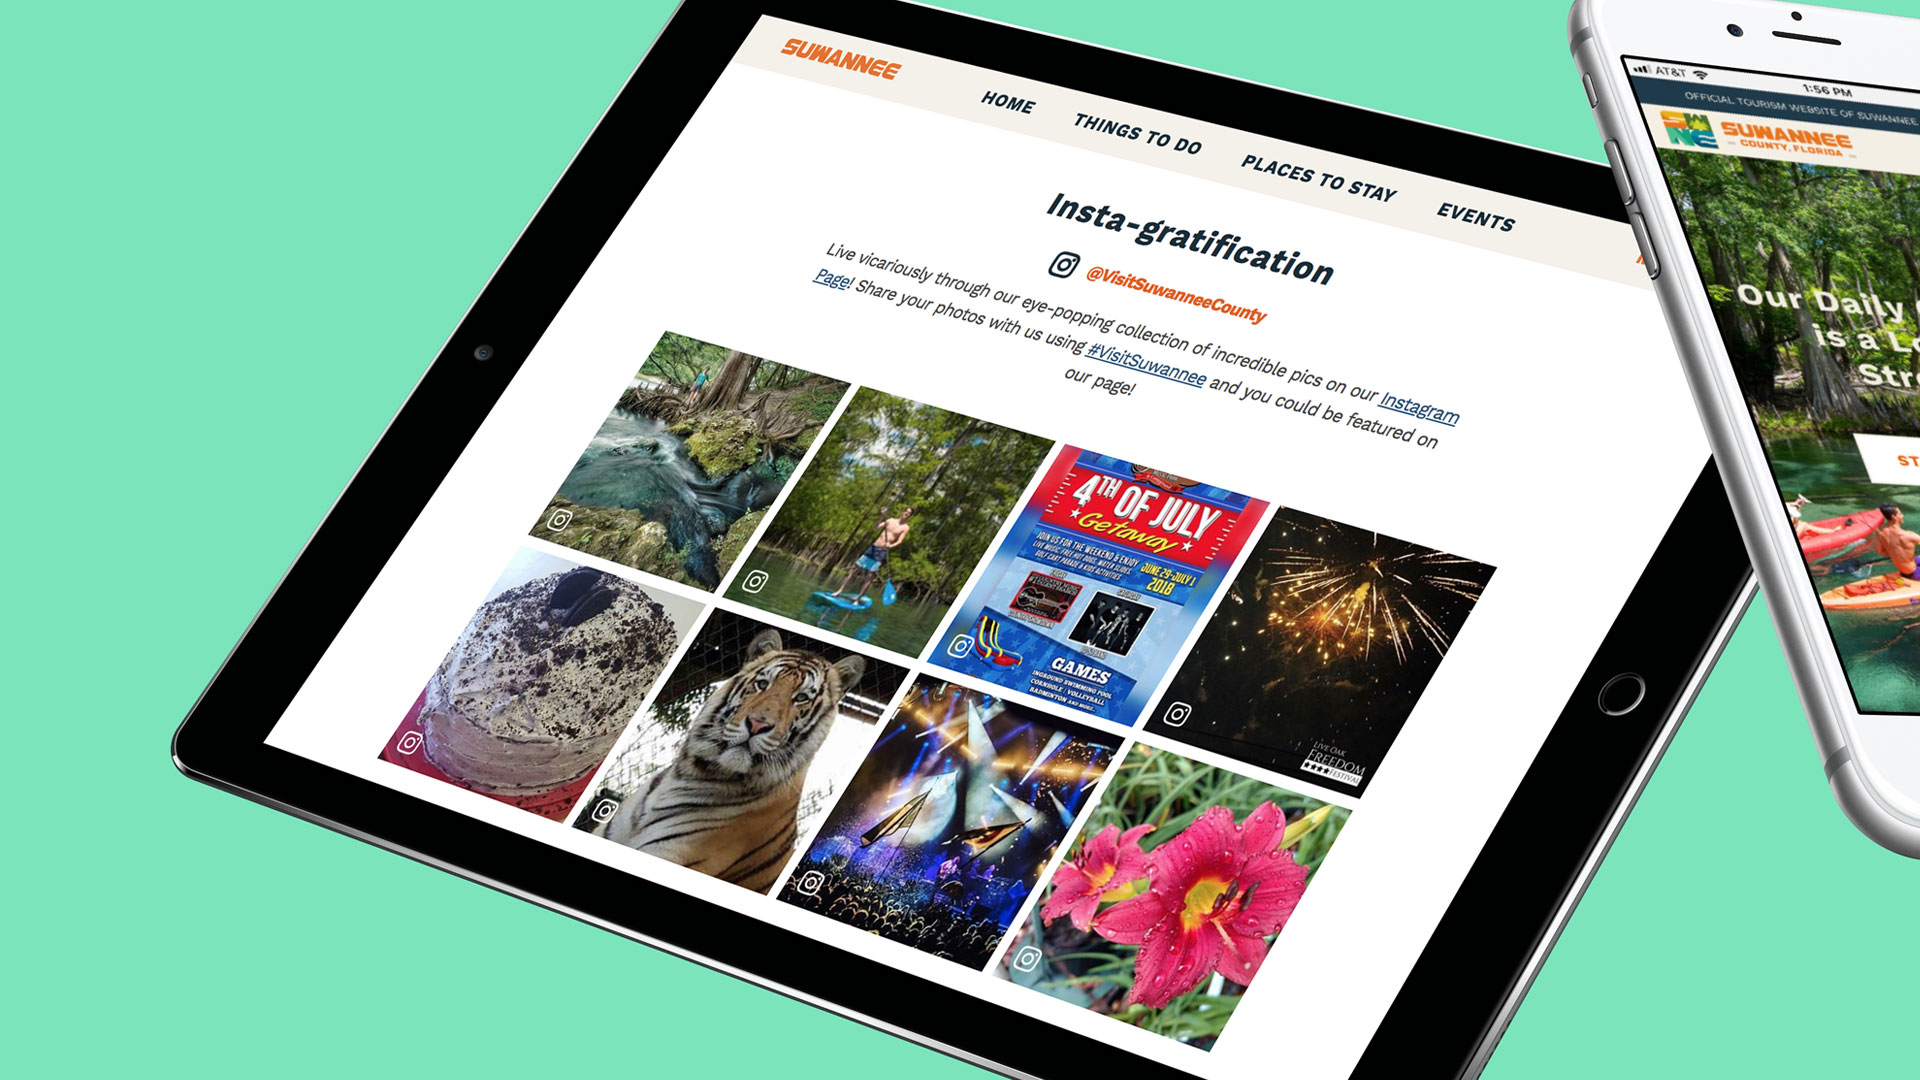 Devices showing Suwannee County Instagram page and website